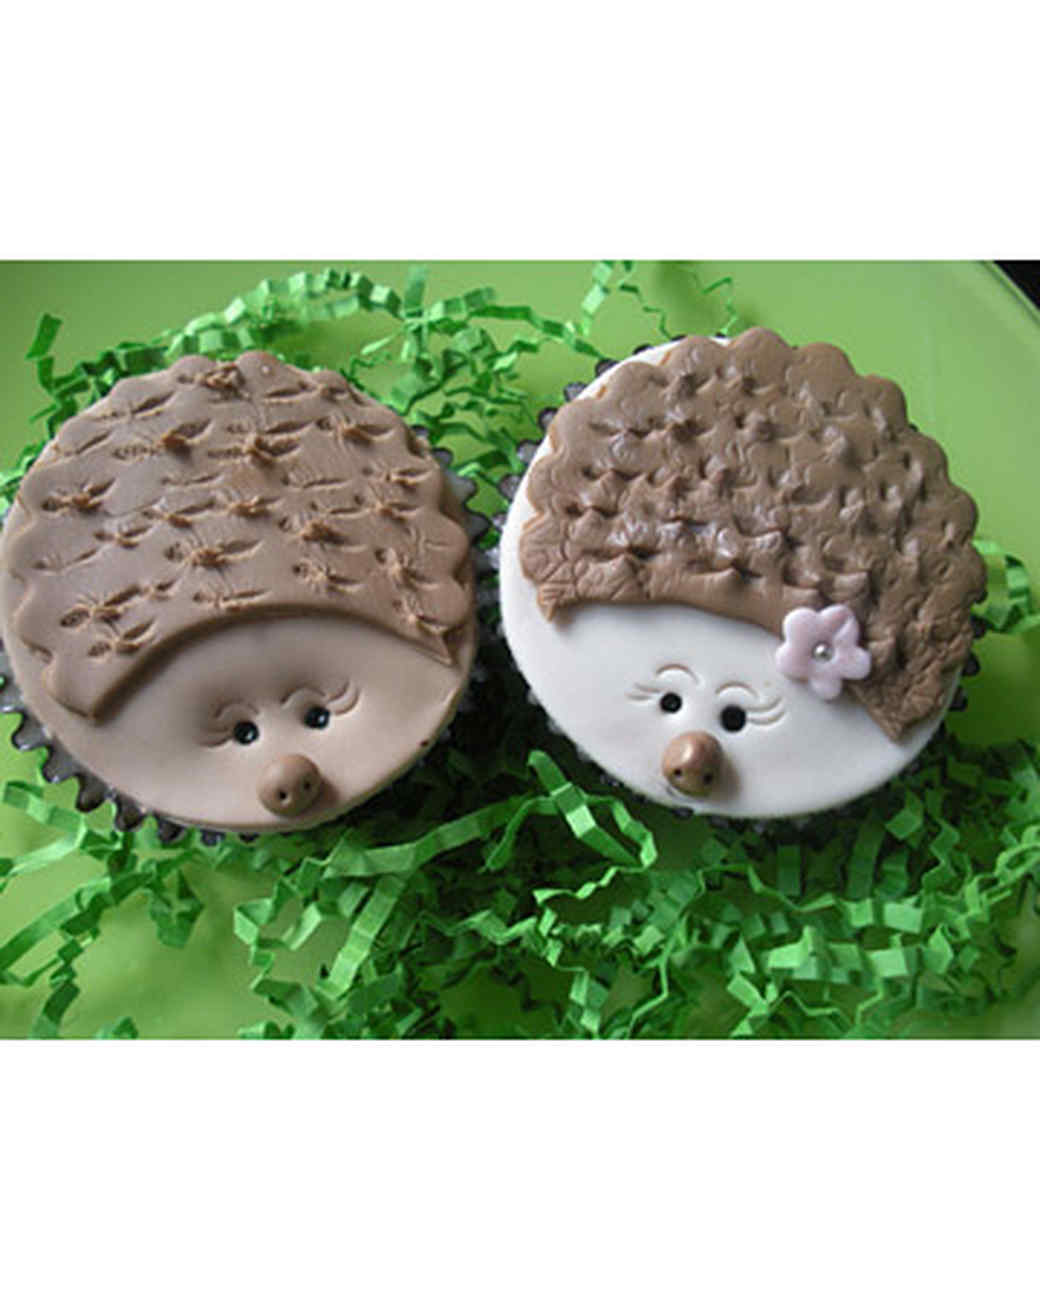 cutestcupcake_hedgehog_dscn3207.jpg